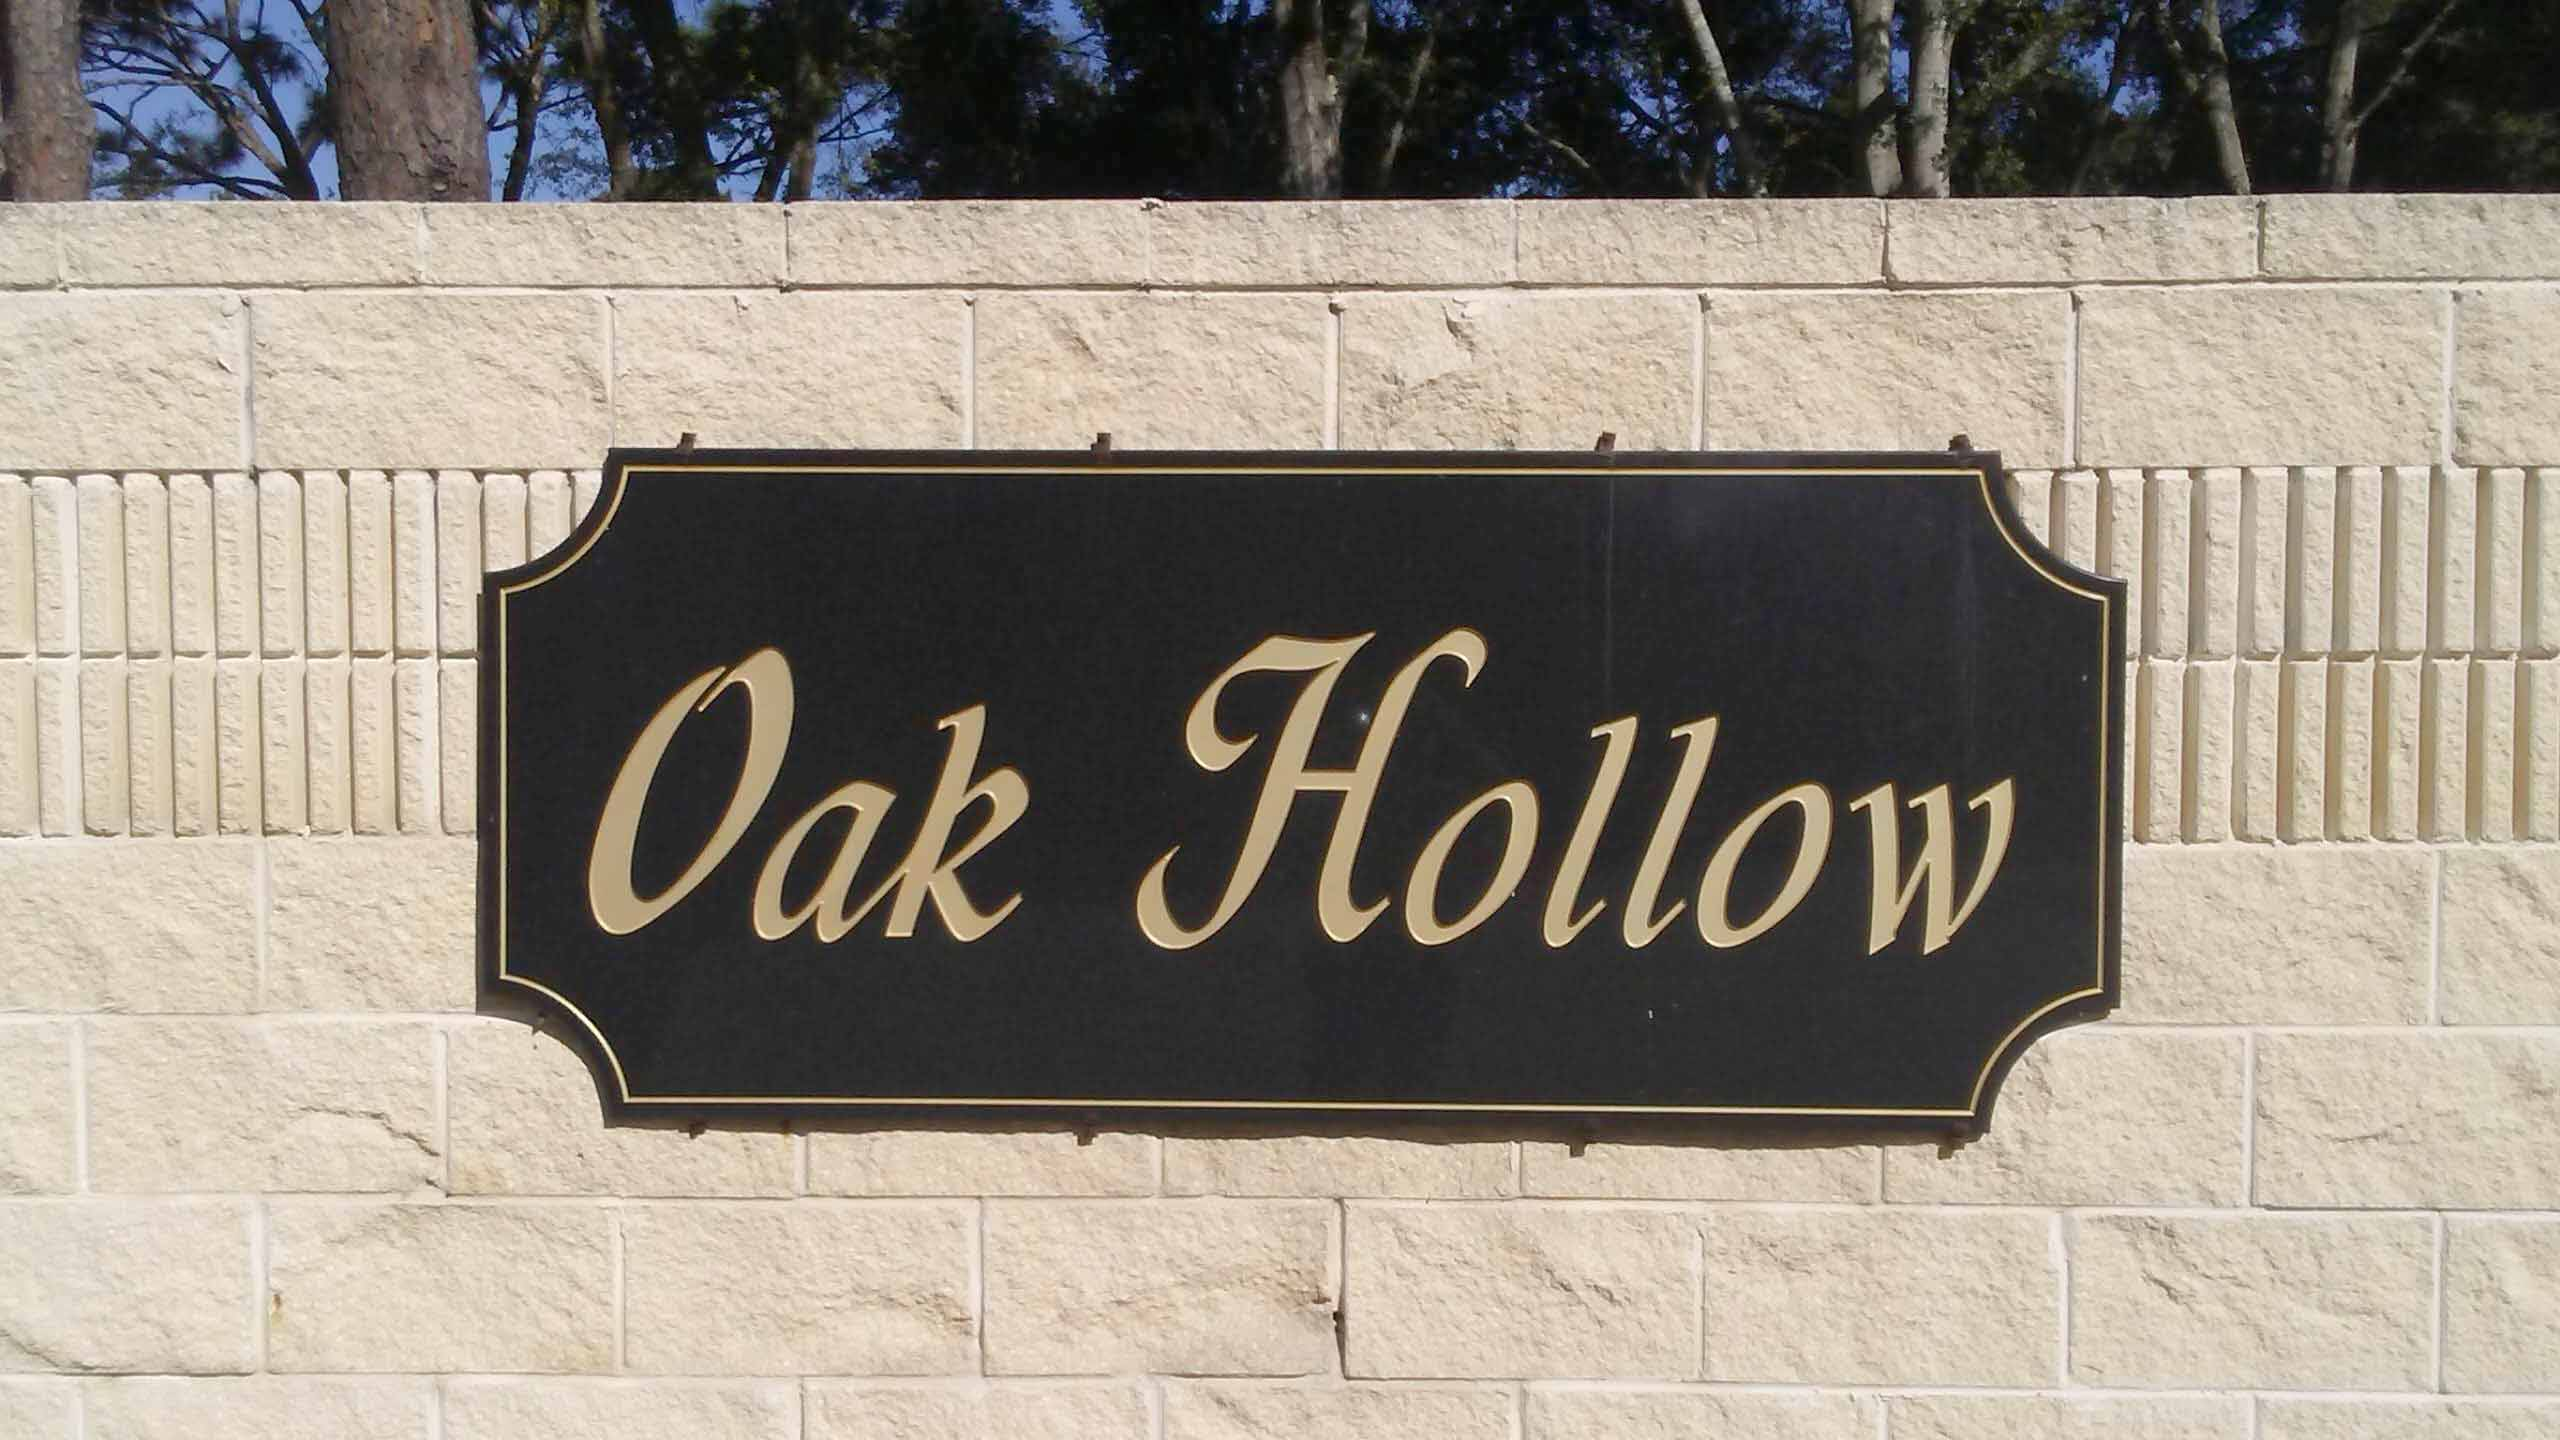 Oak Hollow, Apopka, Florida 32712